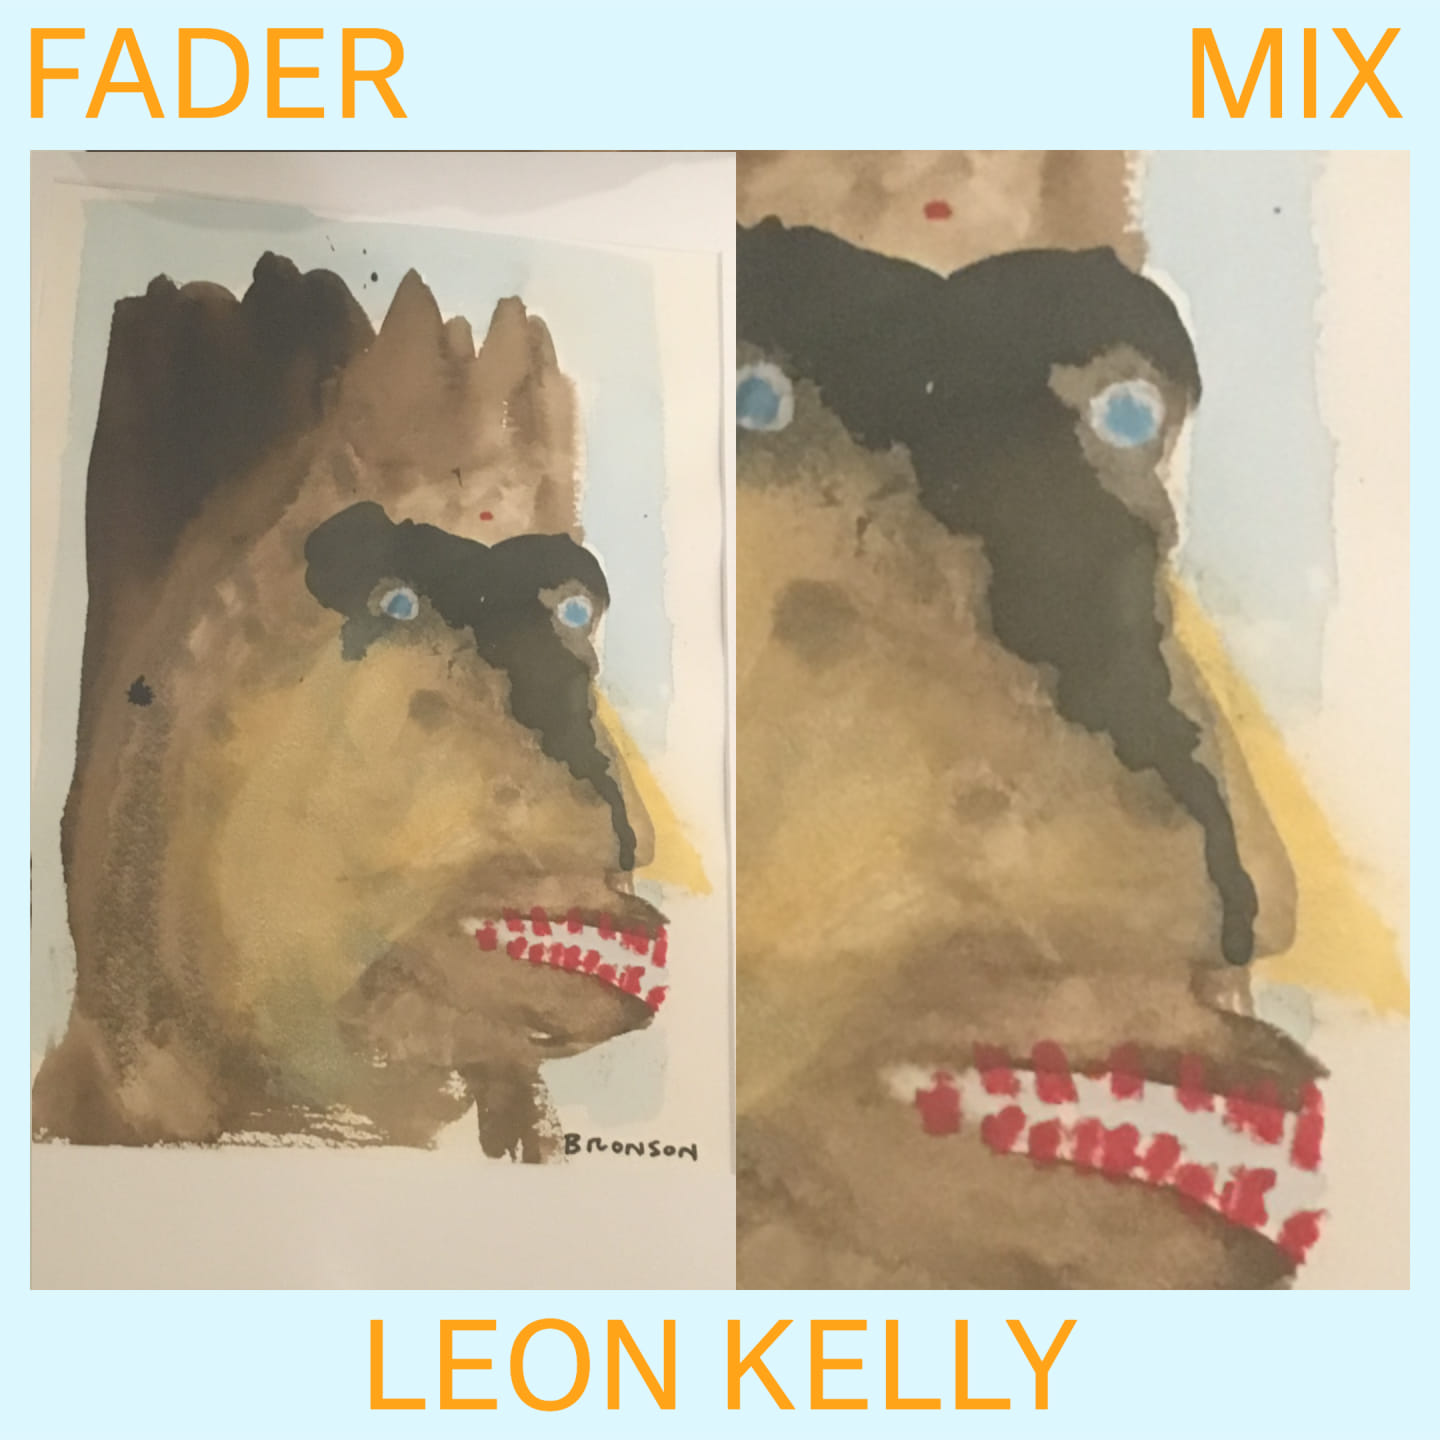 Listen to a new FADER Mix by Leon Kelly